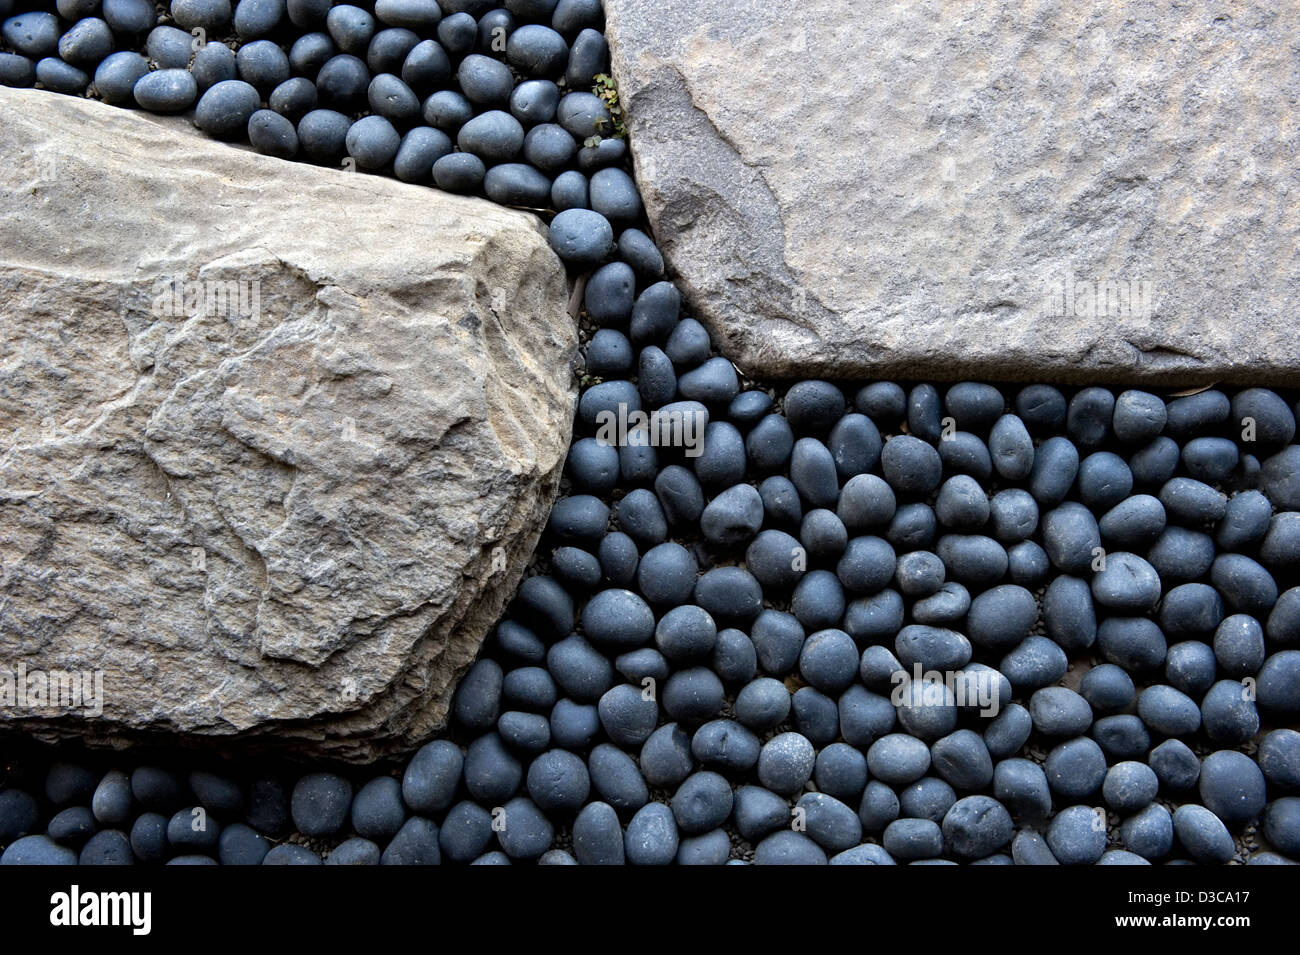 Small, Round, Perfectly Shaped, Blue Gray River Rock Contrasts With Large